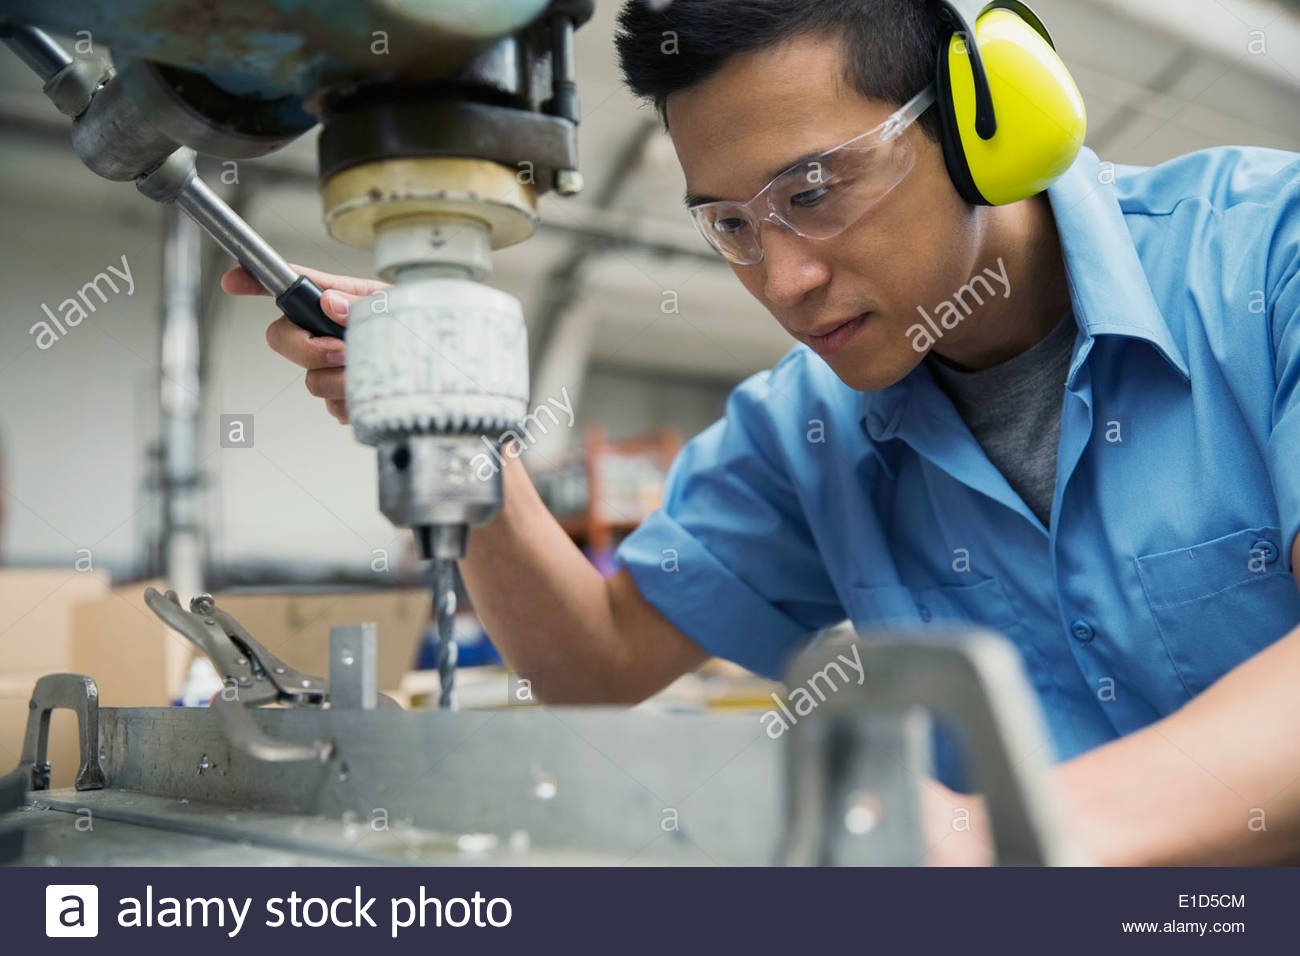 Worker operating drill machinery in manufacturing plant - Stock Image